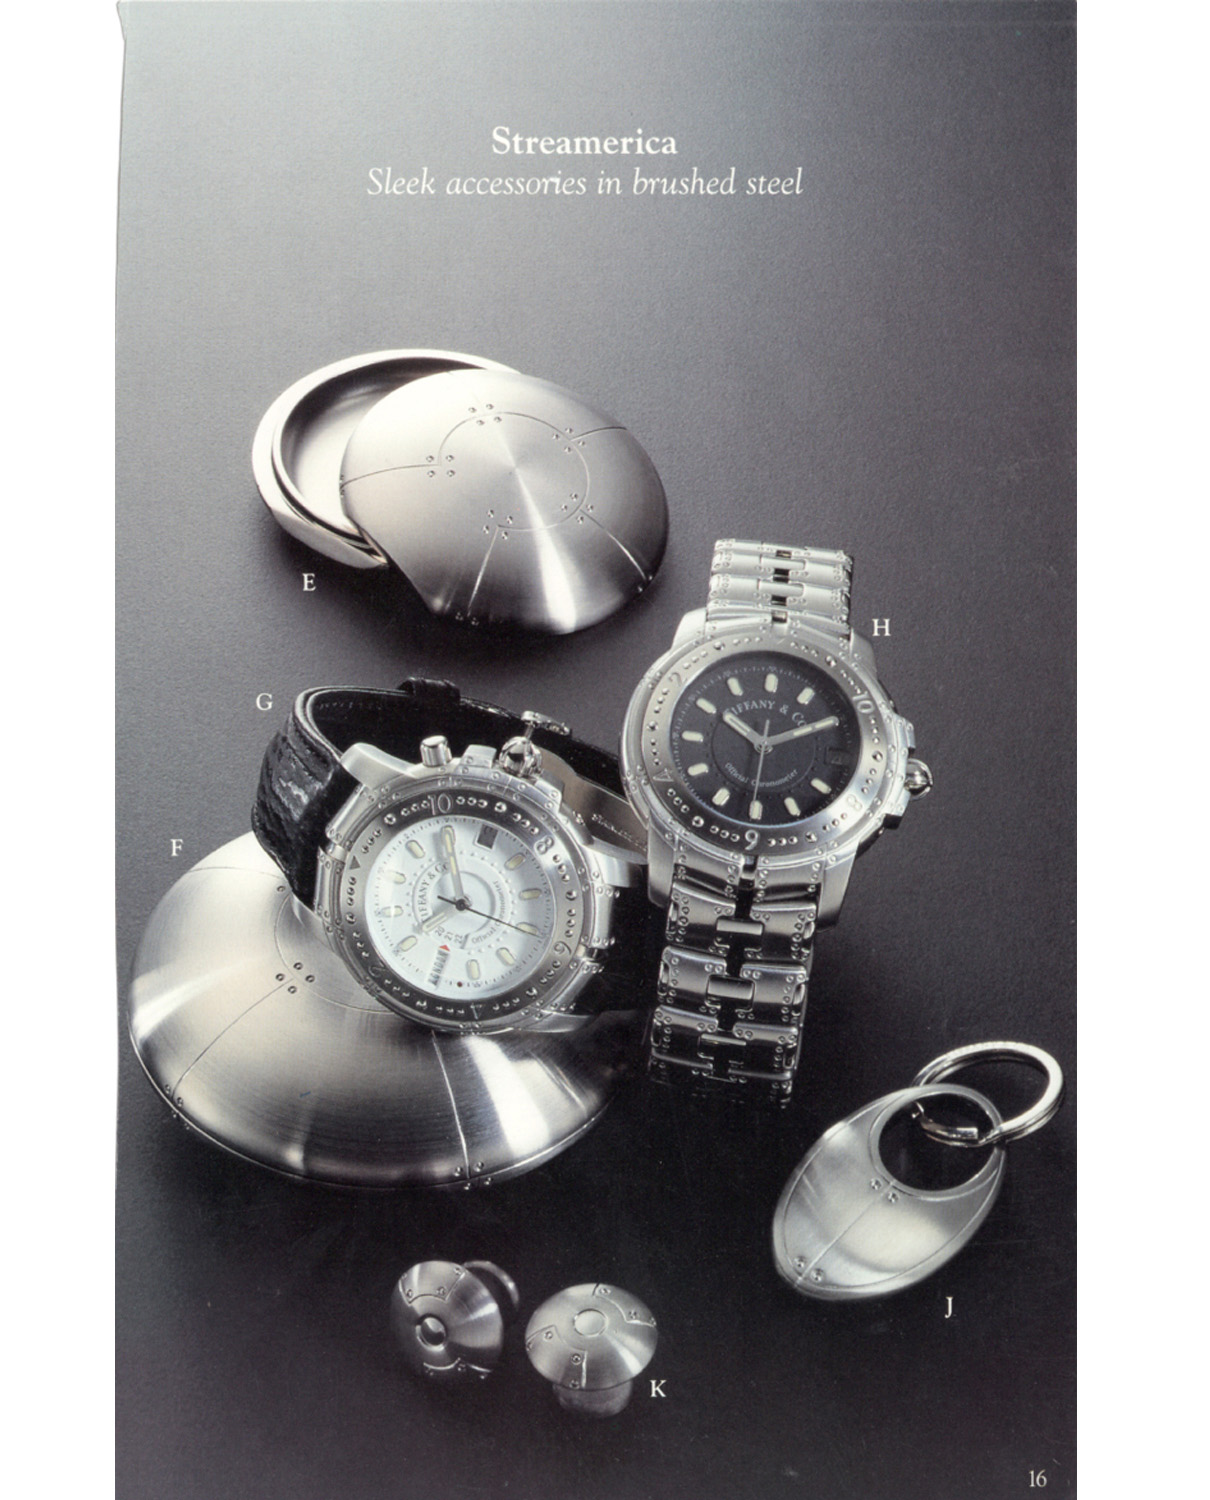 Tiffany & Co. Blue Book Catalog from the late 90's Sleek accessories in brushed steel Streamerica Collection: Perisphere Nesting Boxes, the World Timer Automatic Watch with white face and leather band, the Automatic Chronometer, geodome cufflinks, Curviline key ring.